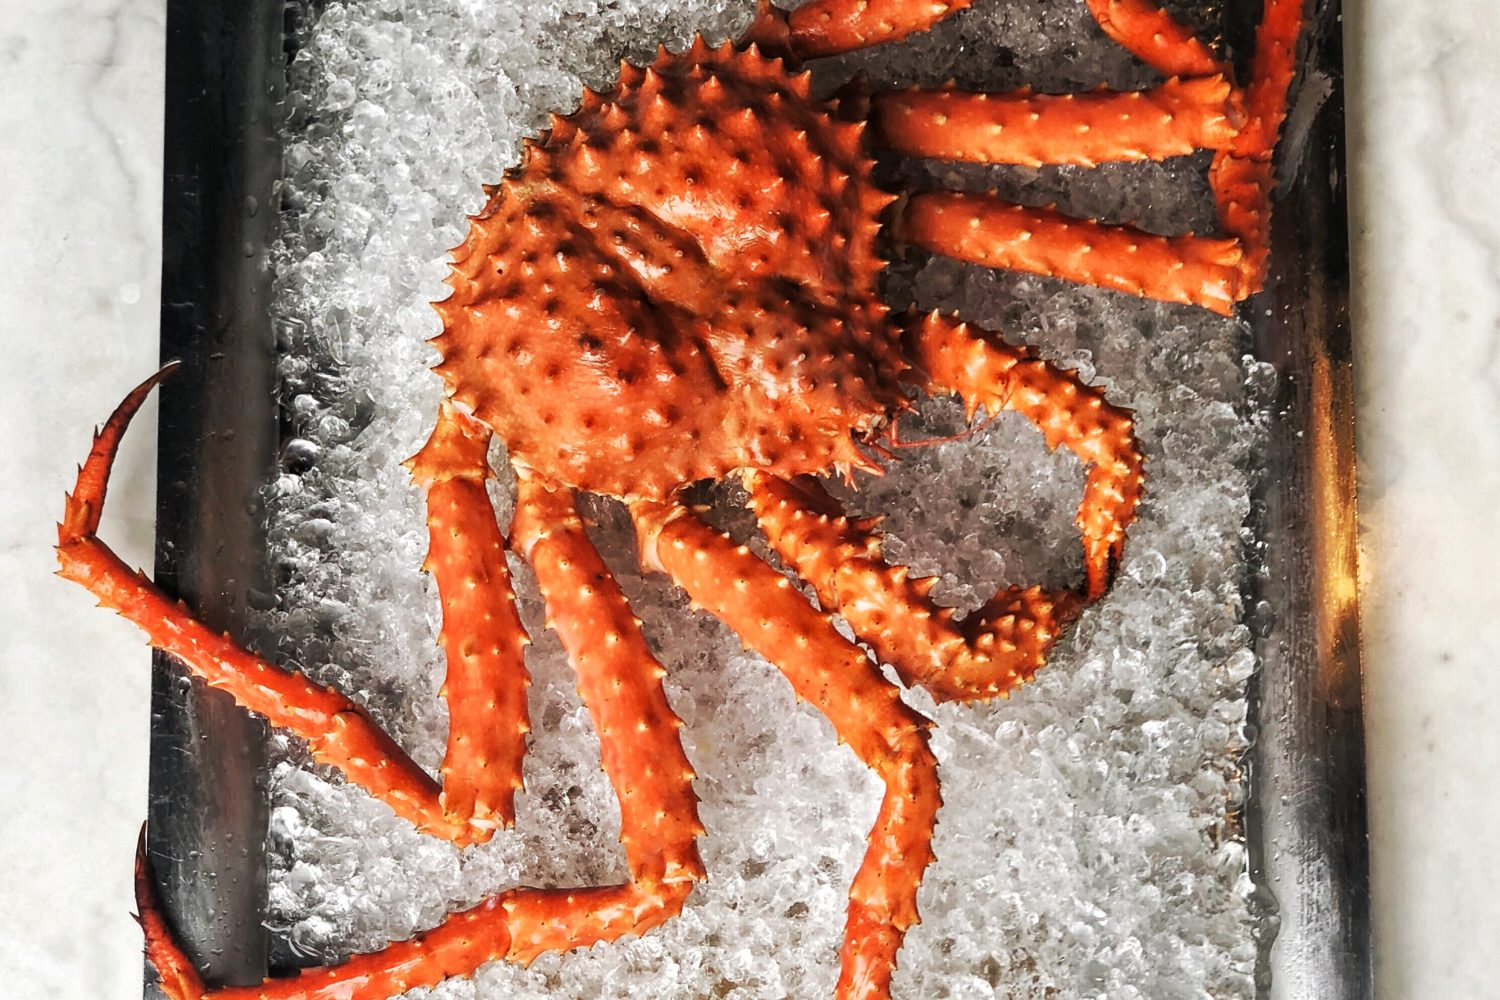 Crab is on the menu for RPM Italian's feast. Photograph by Anthony Colucci.